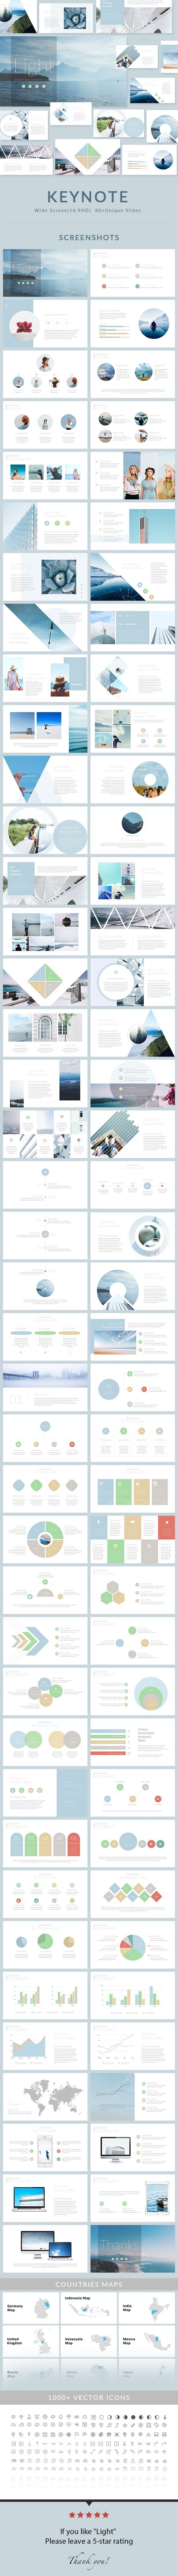 Light - Keynote Presentation Template - Business Keynote Templates Looking for Clothes? Download the FREE unique Amazon Discount Finder Chrome Extension now! http://wp.me/p4YZIc-2Bg #deal